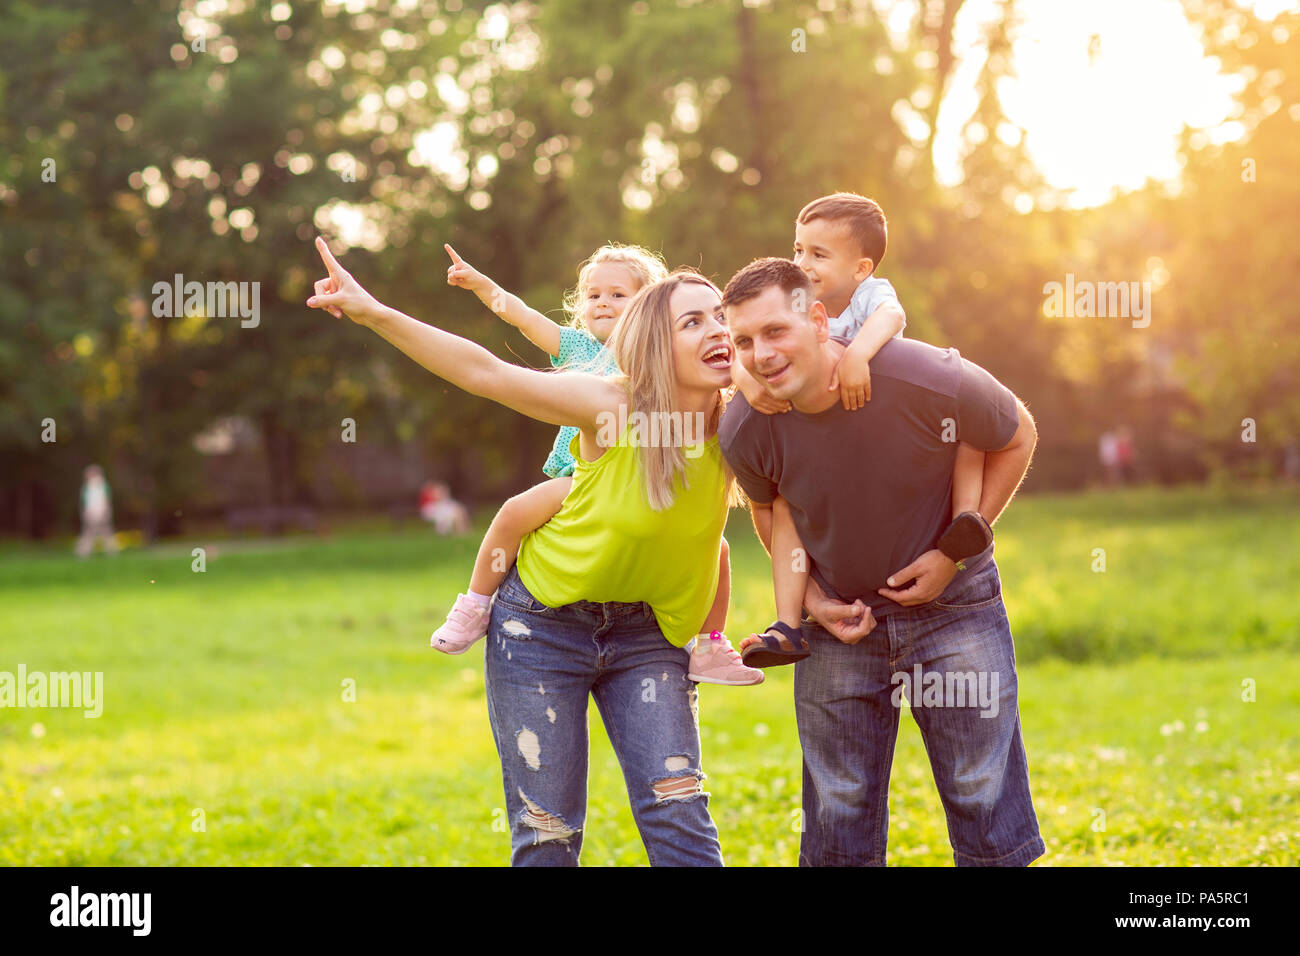 Funny young parents giving children piggyback ride in park - Stock Image